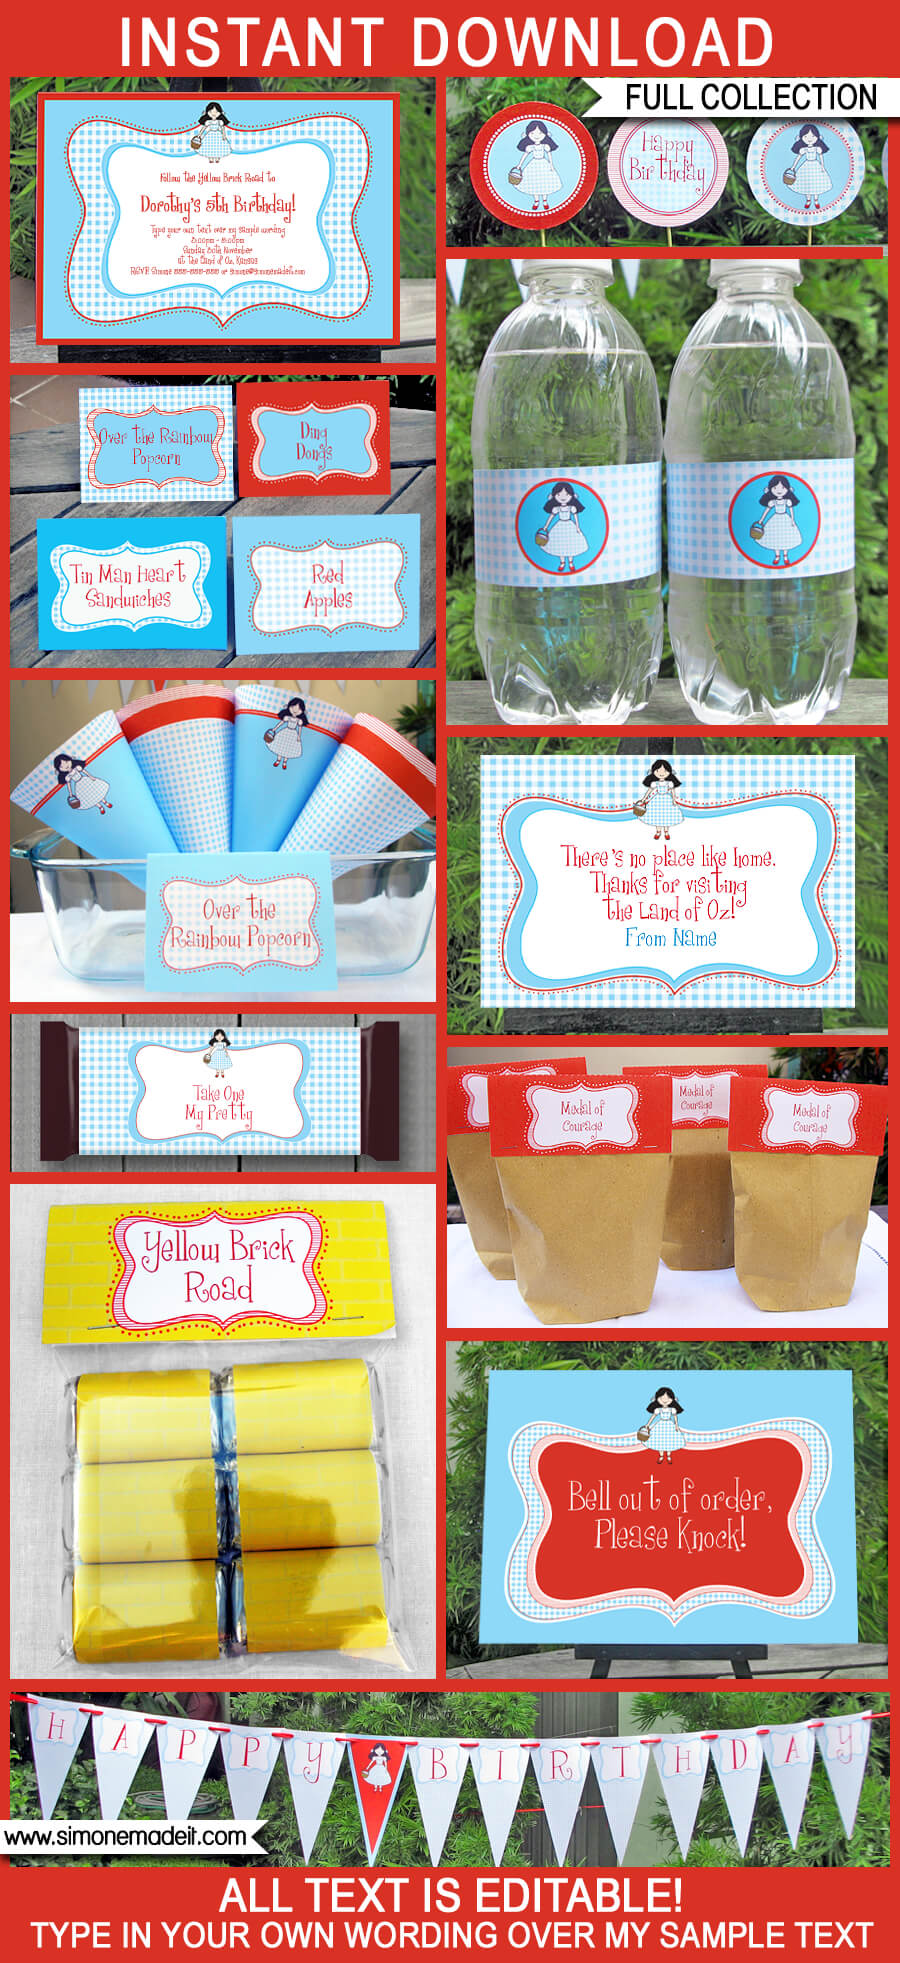 Wizard of Oz Party Printables, Invitations & Decorations | Editable Birthday Party Theme Templates | INSTANT DOWNLOAD $12.50 via SIMONEmadeit.com